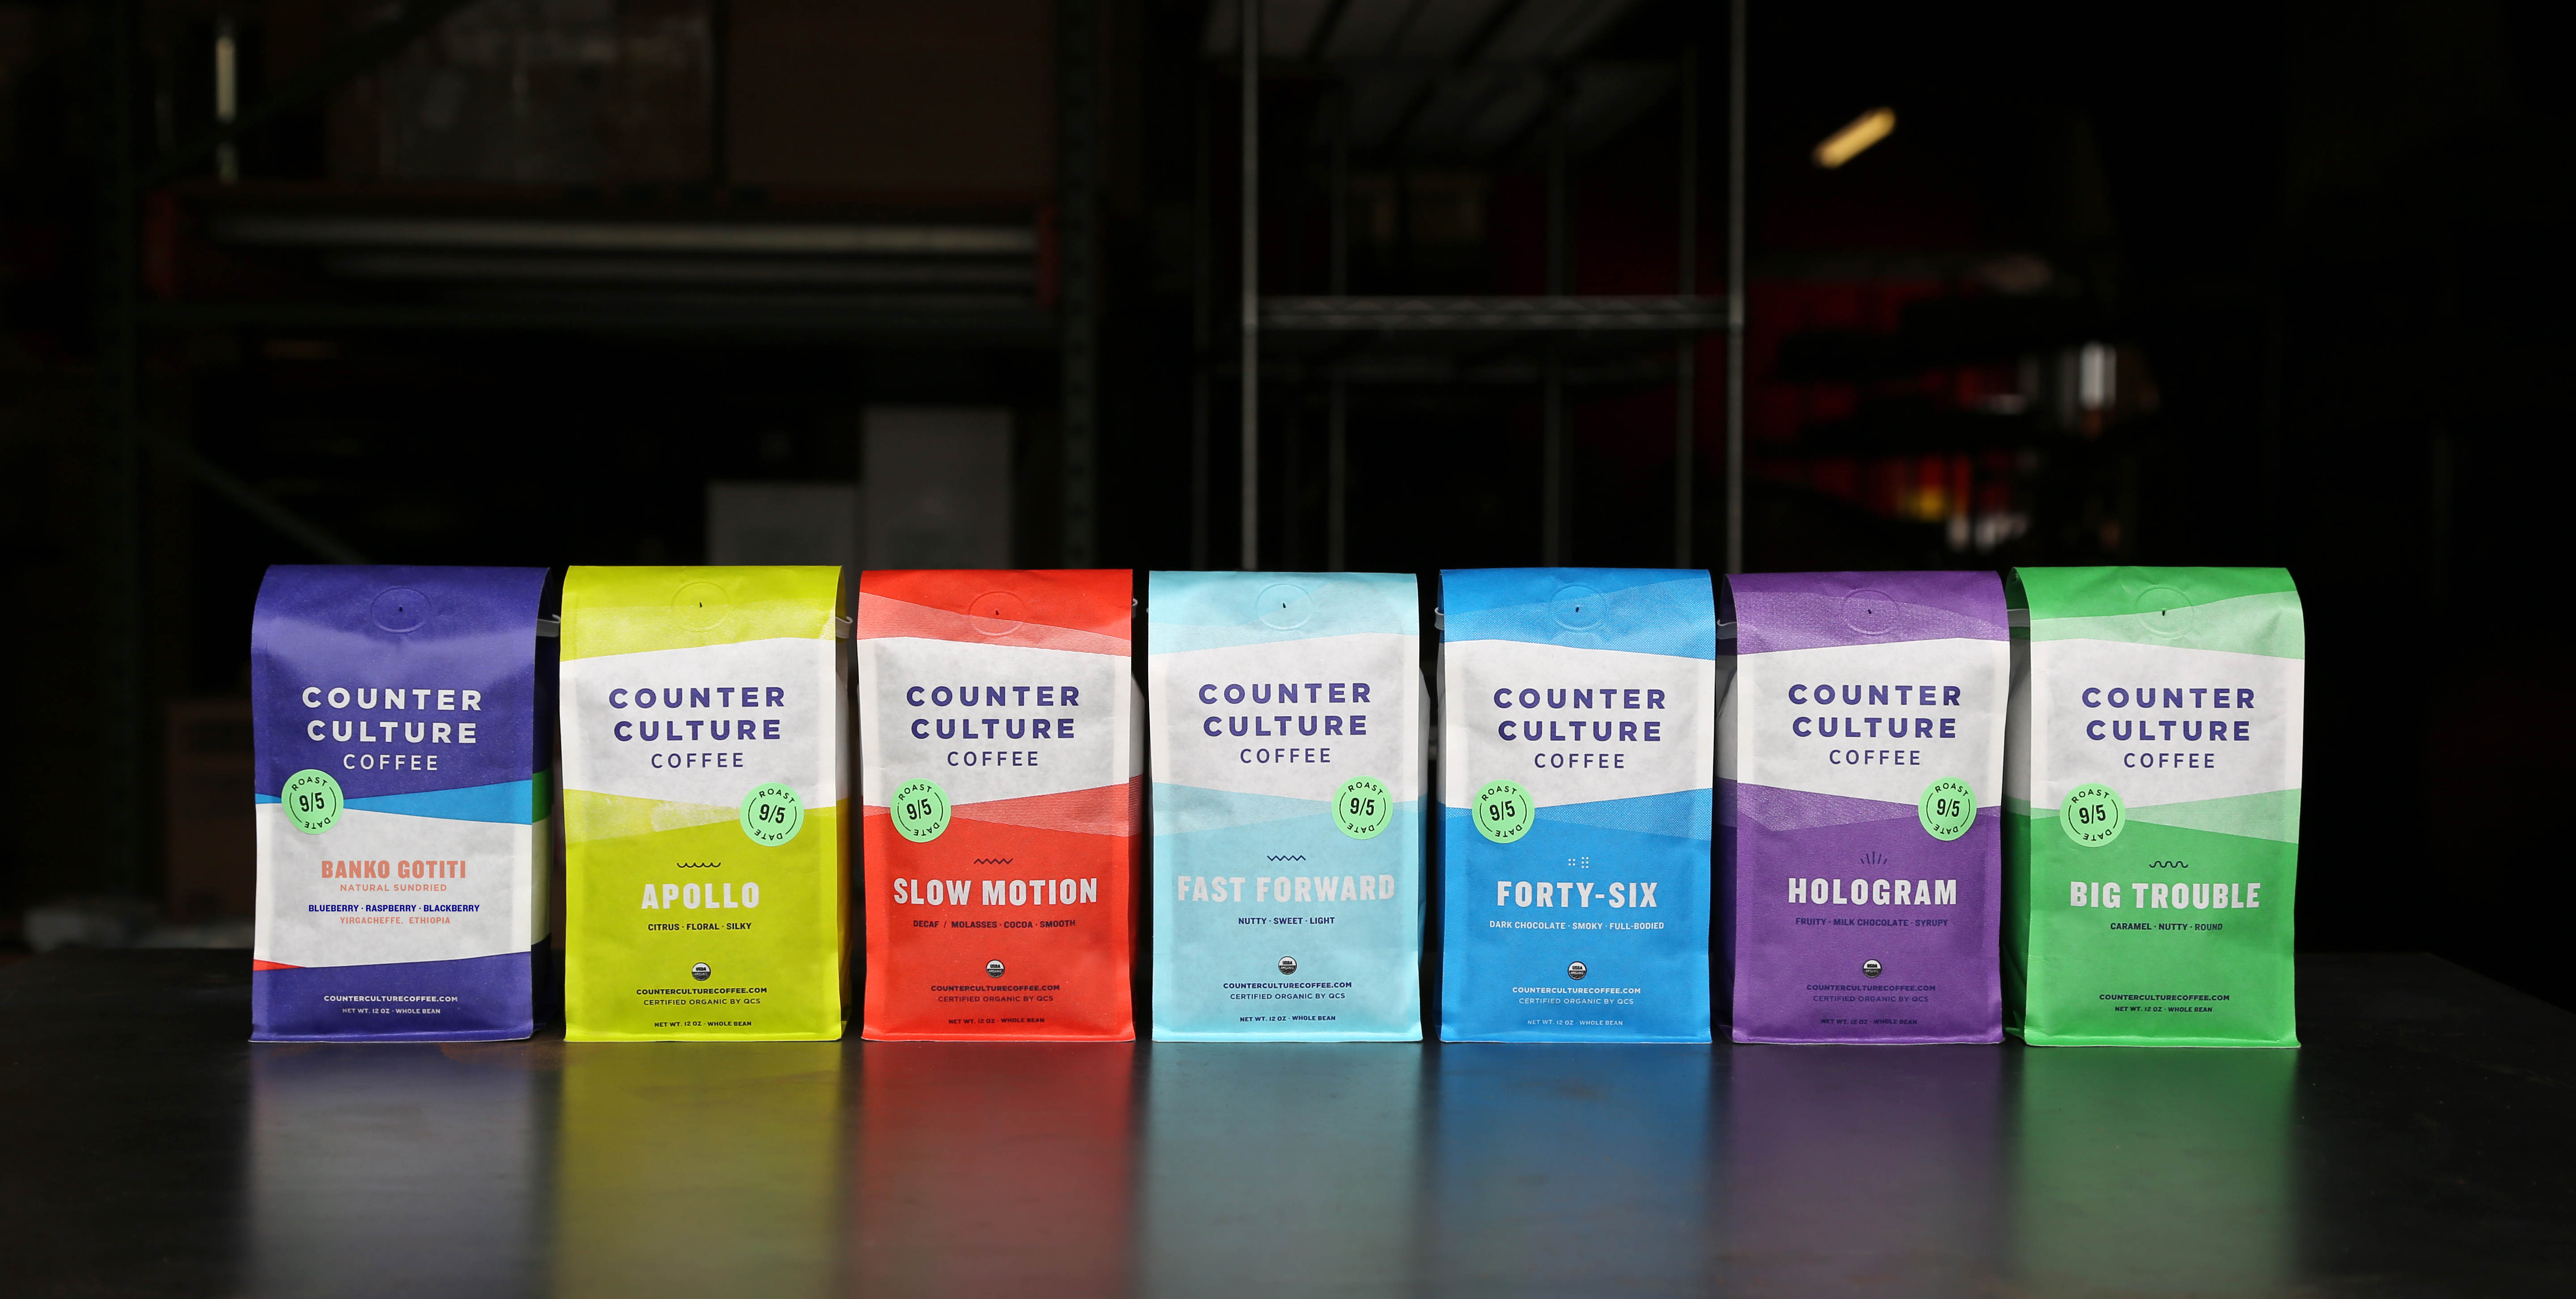 Photos by Christy Baugh — Courtesy of Counter Culture Coffee